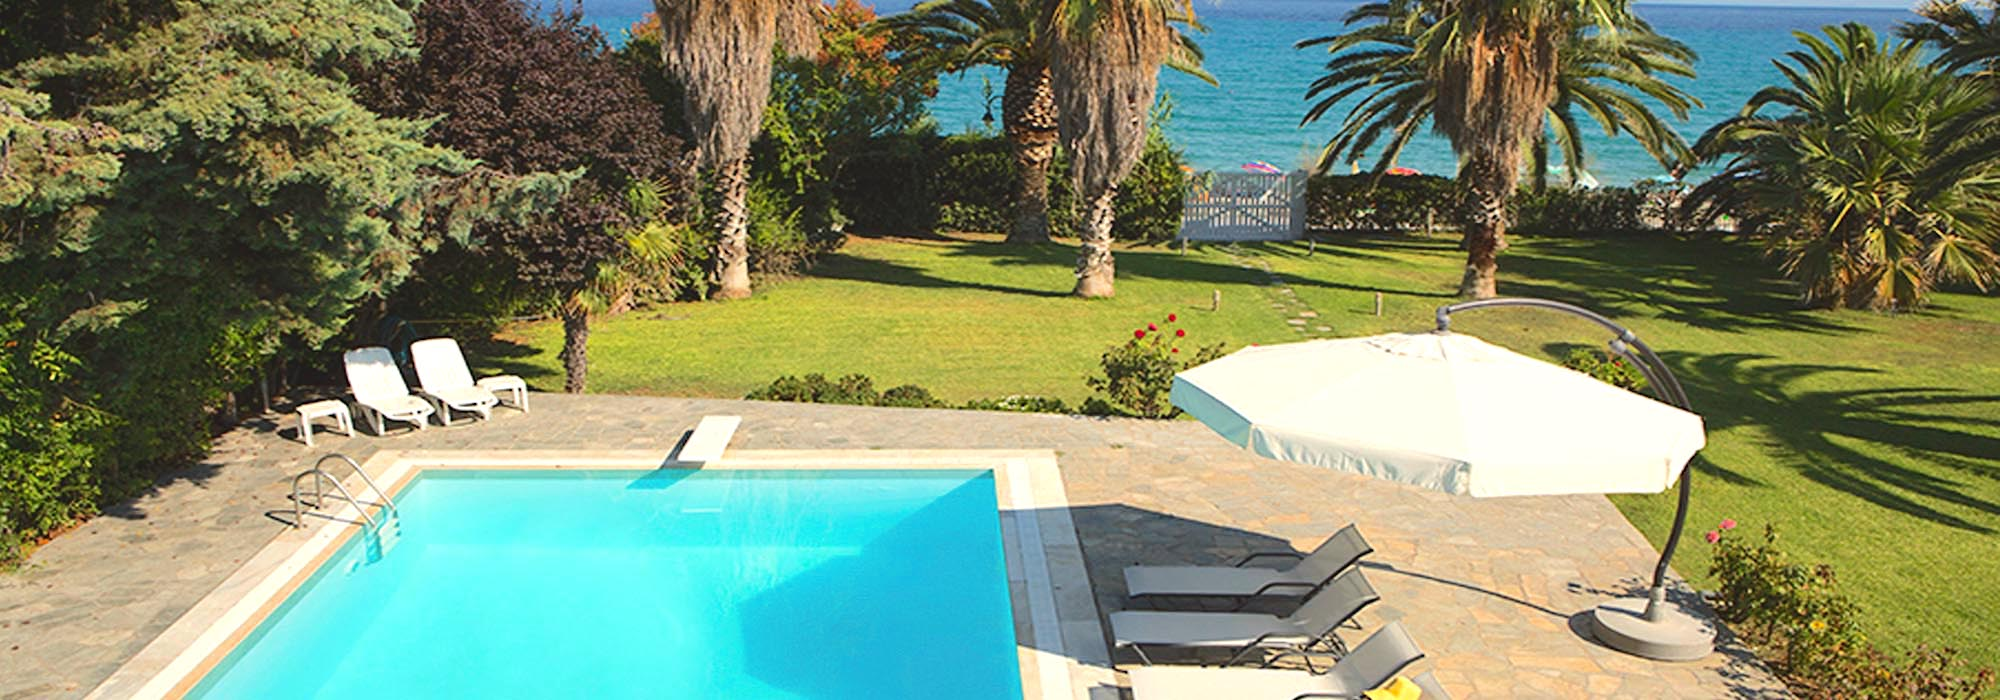 Luxury Seafront Top Villa, at Pefkohori Halkidiki, Price Reduced 1 million